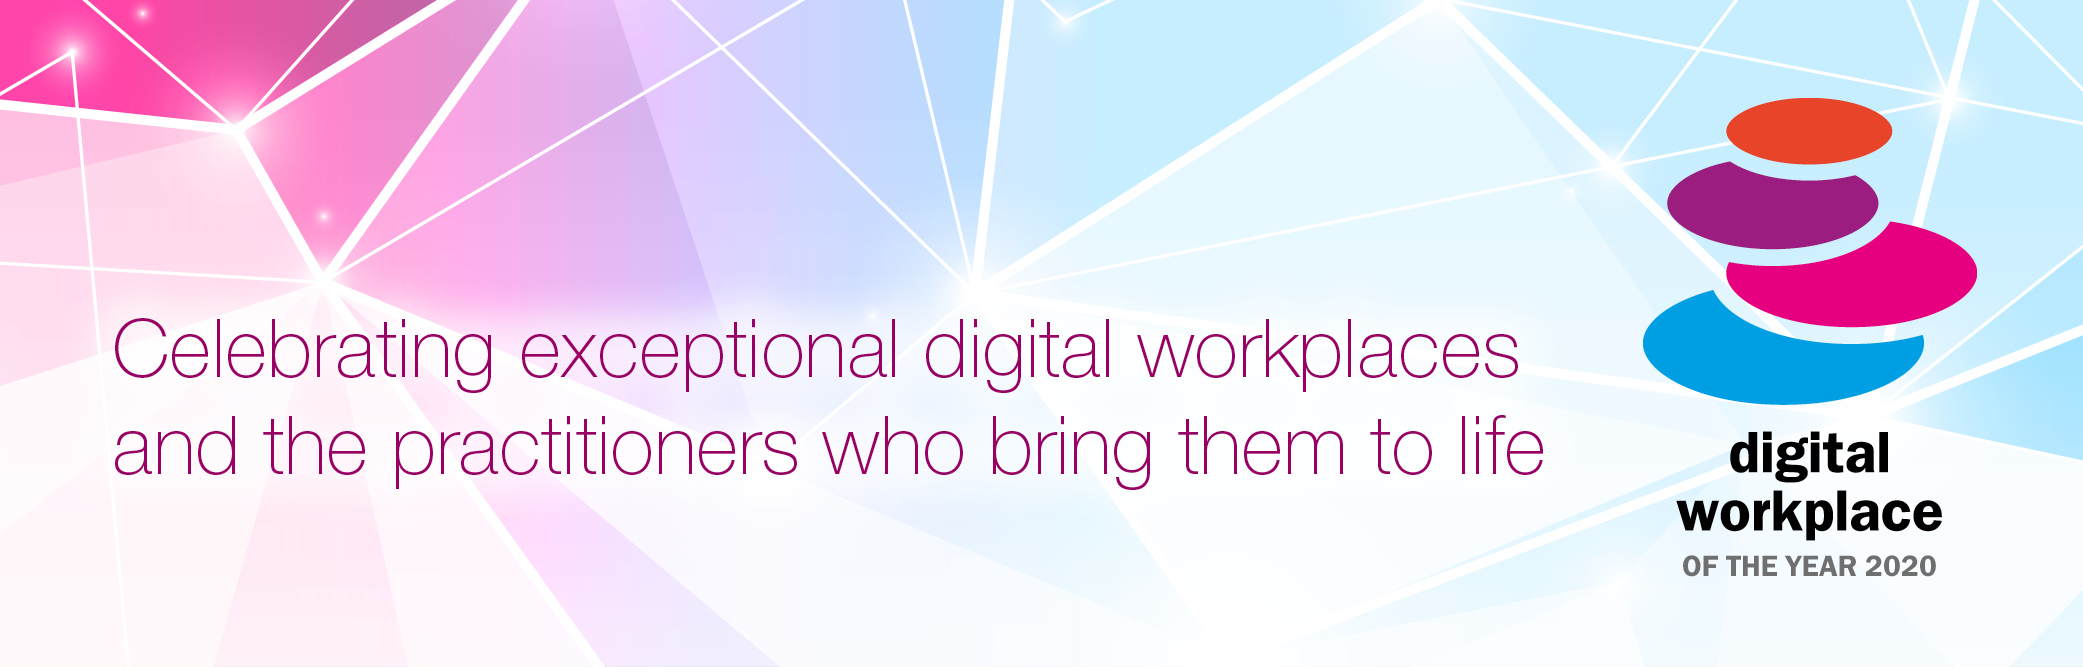 Digital Workplace of the Year